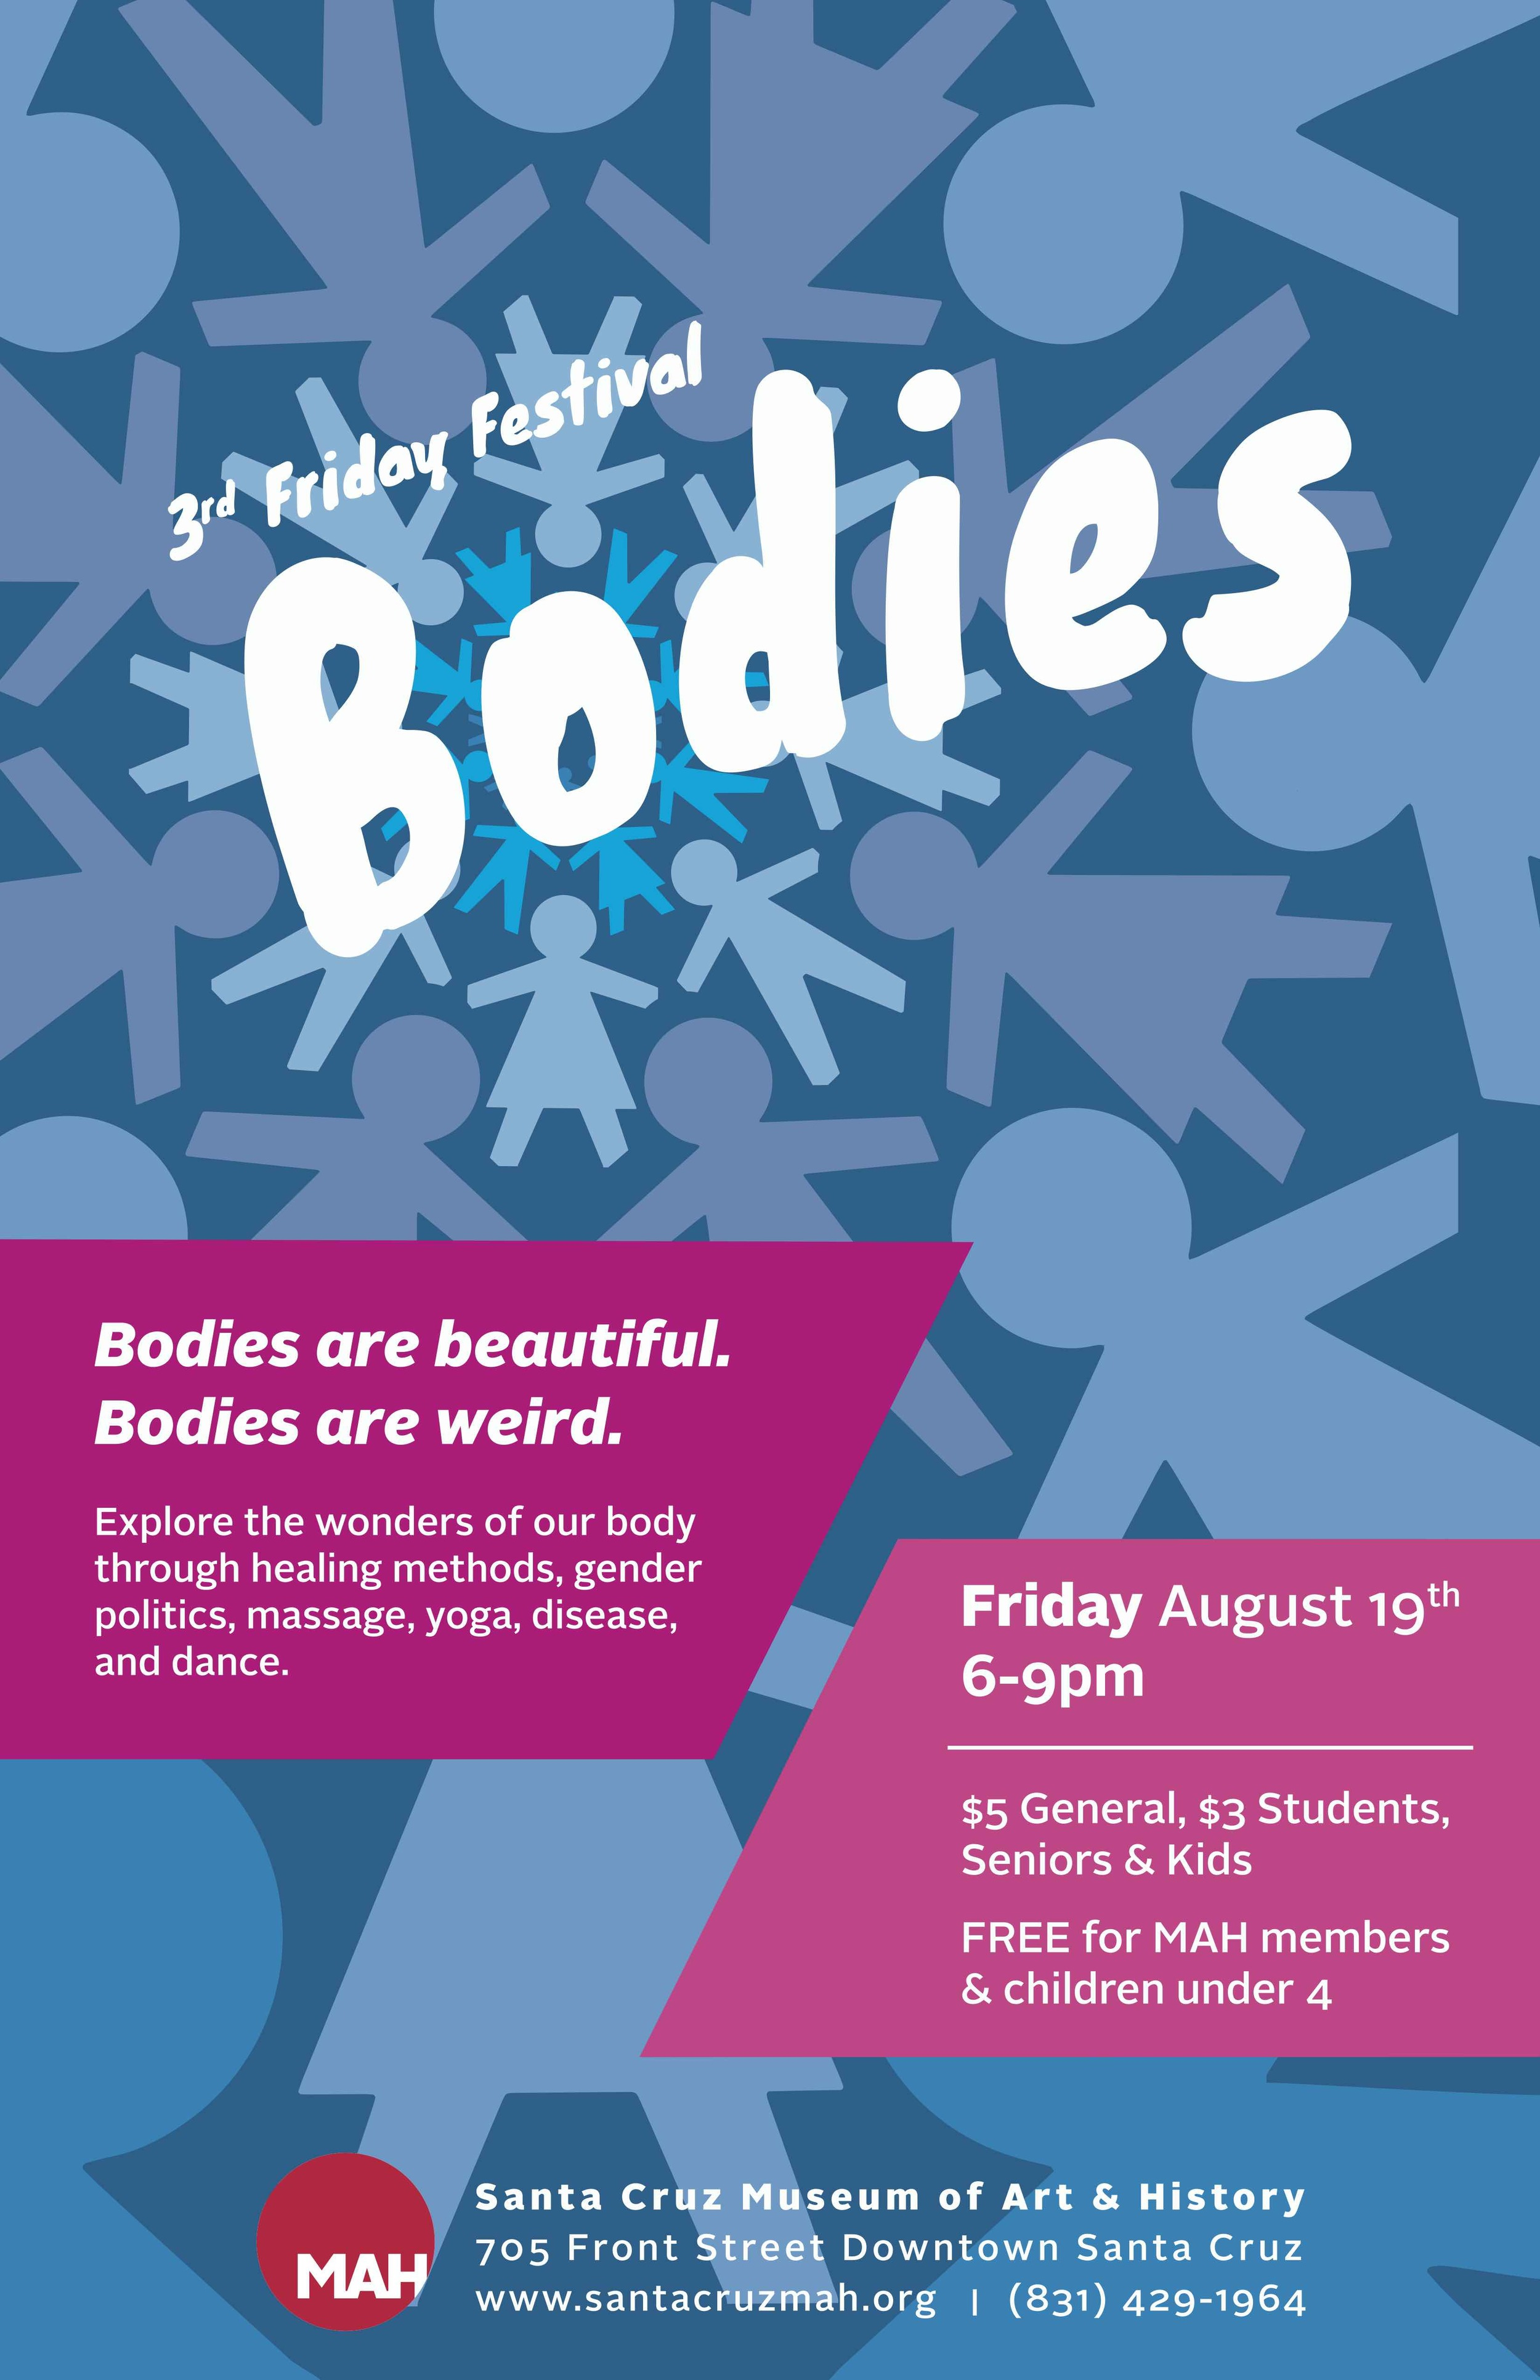 3rd Friday Bodies Poster.jpg